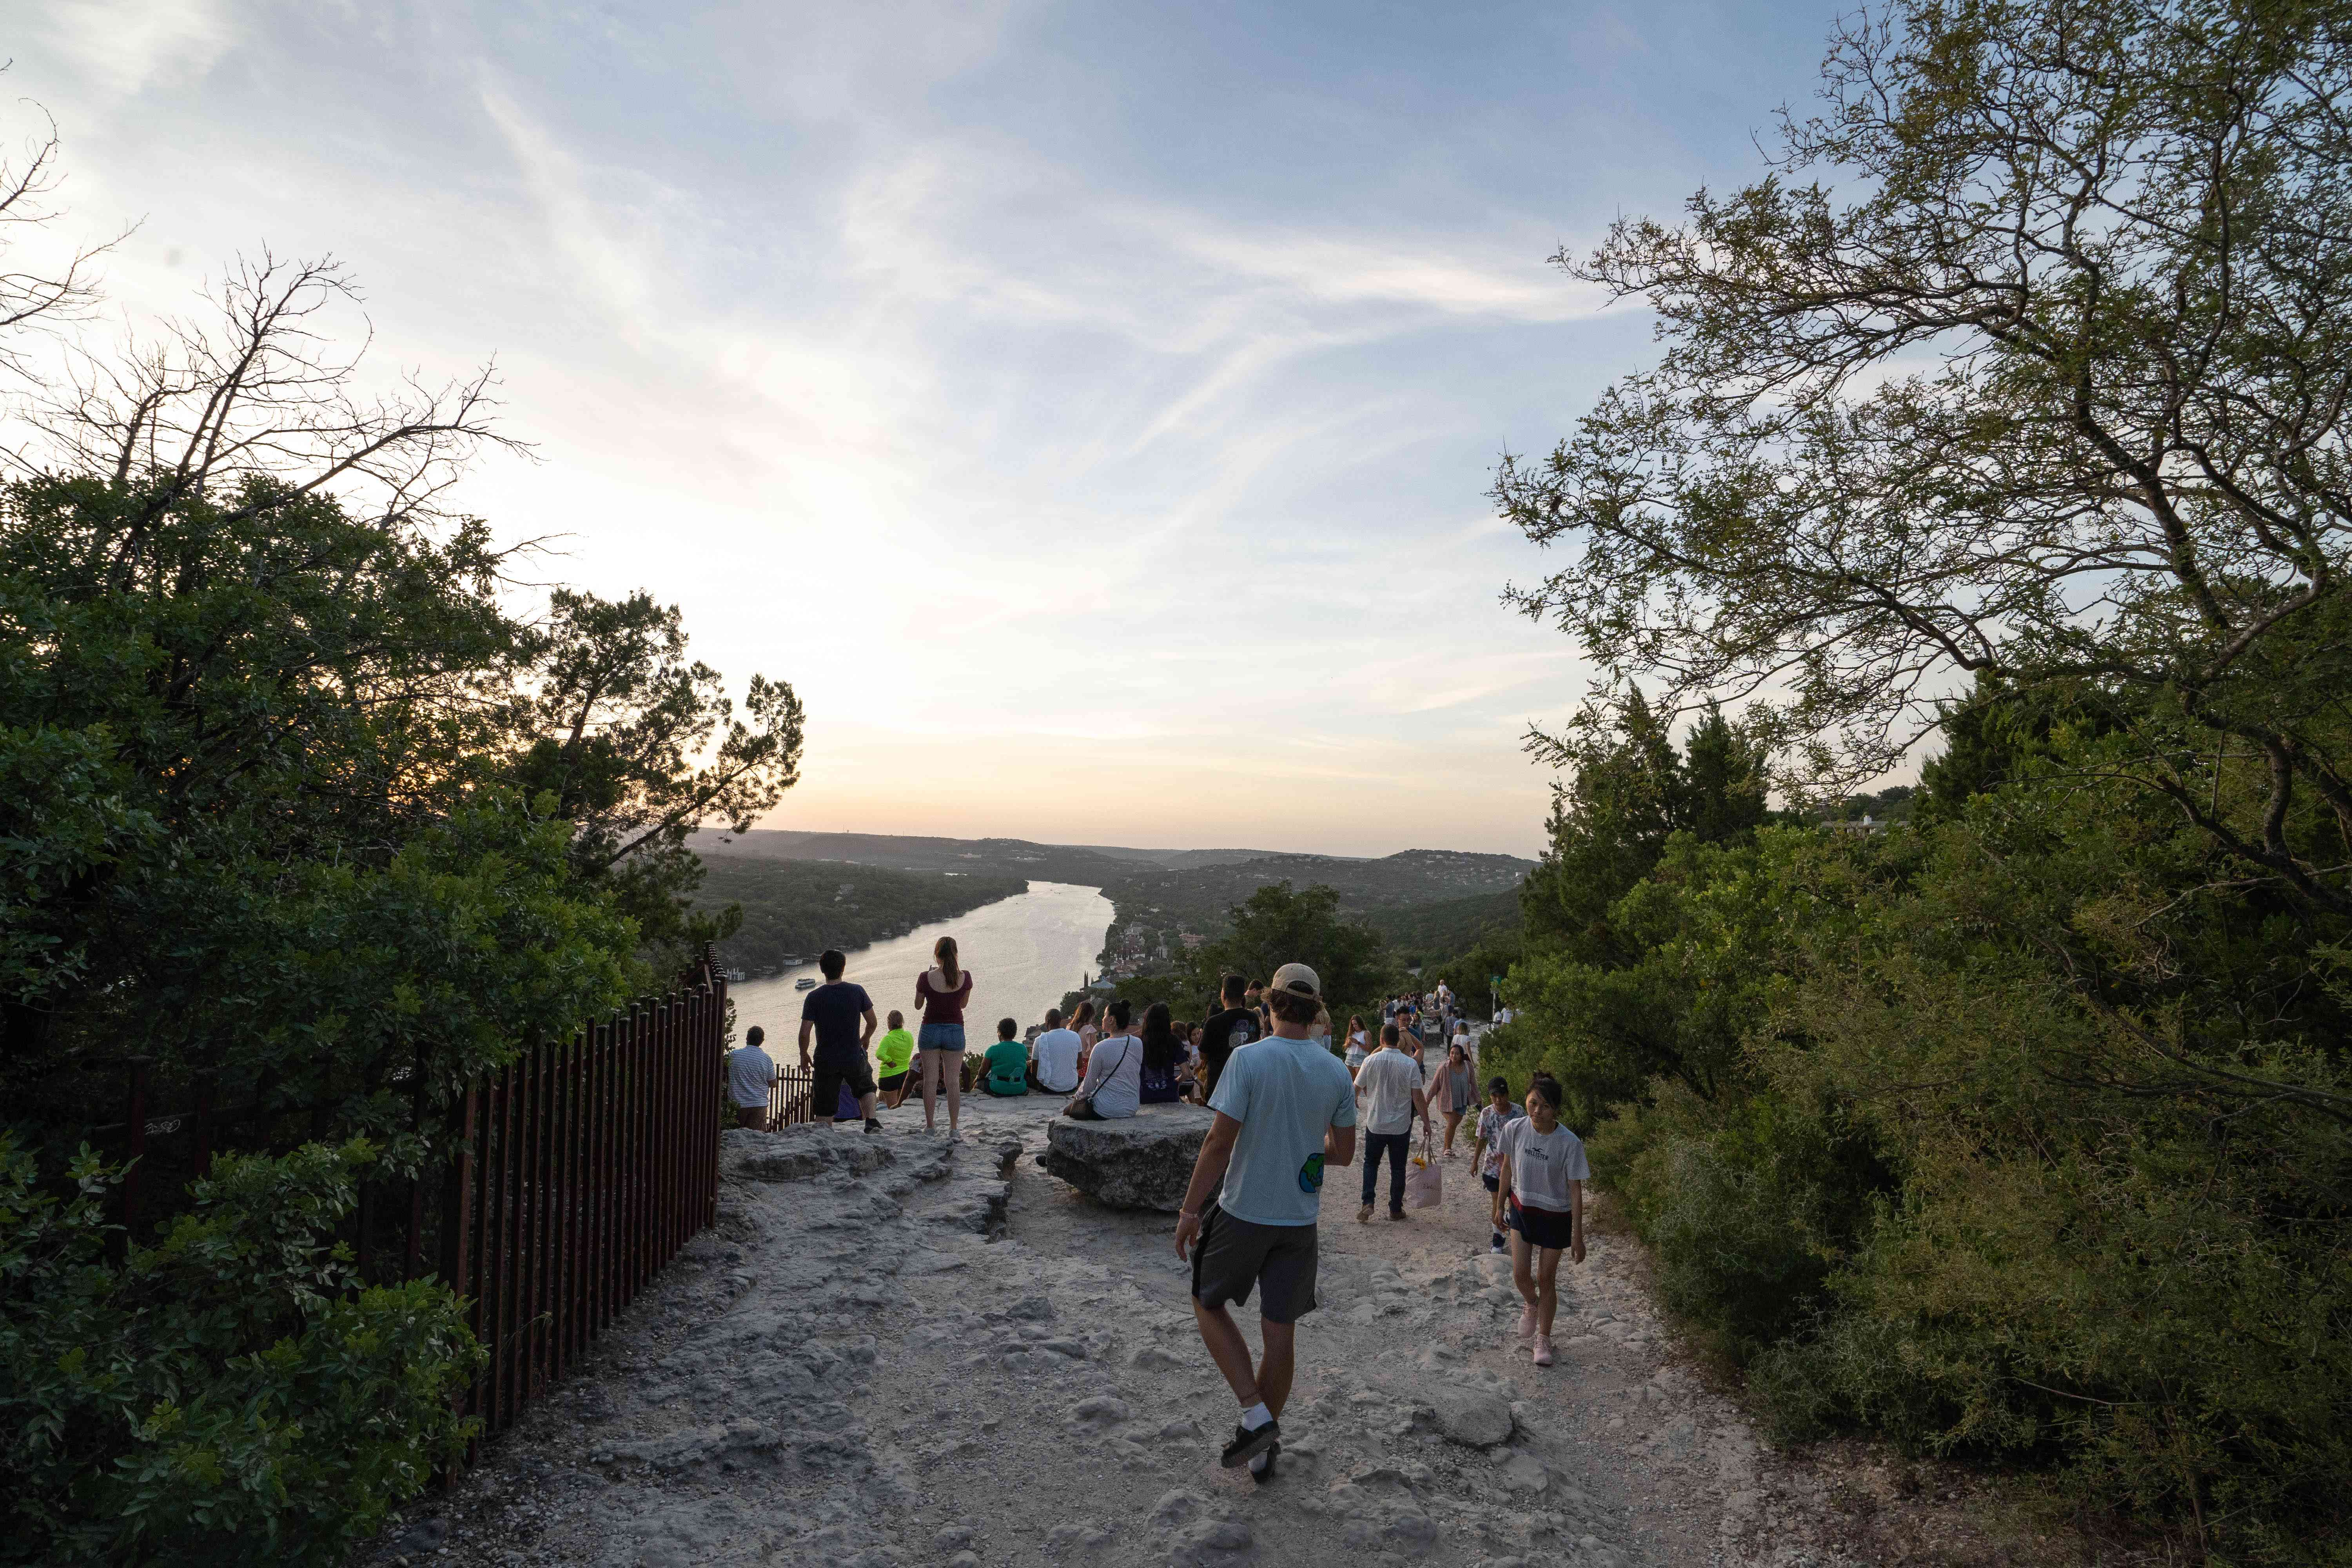 People enjoying the view from the top of Mount Bonnell